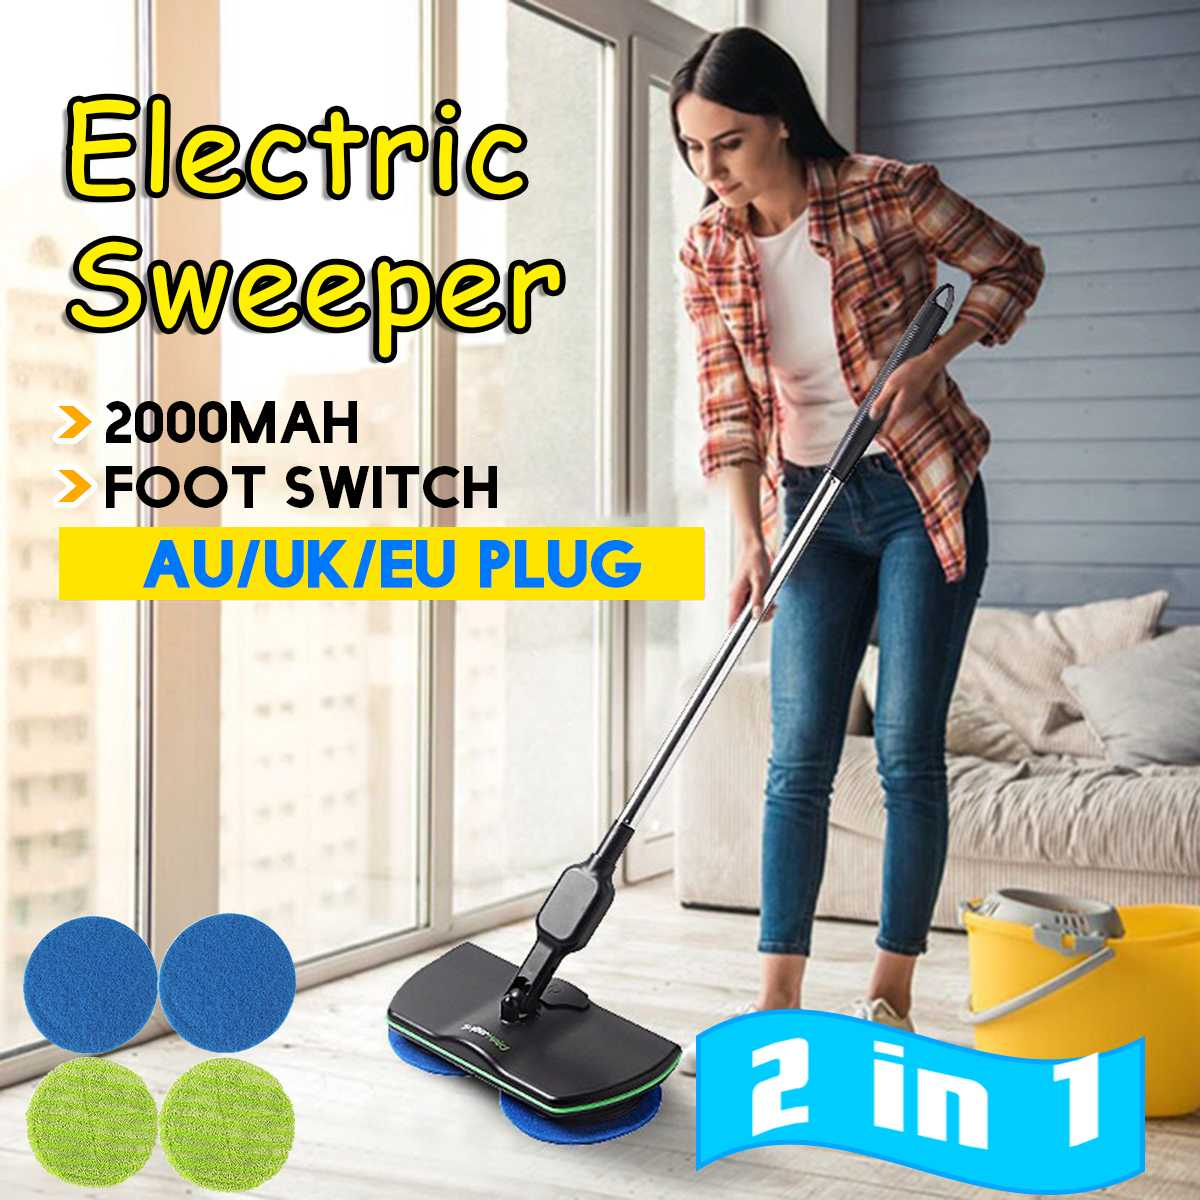 2 in 1 Electric Mop 360 Rotation Rechargeable Cordless Floor Cleaner Scrubber Polisher Microfiber Rotary Cleaning Mop for Home